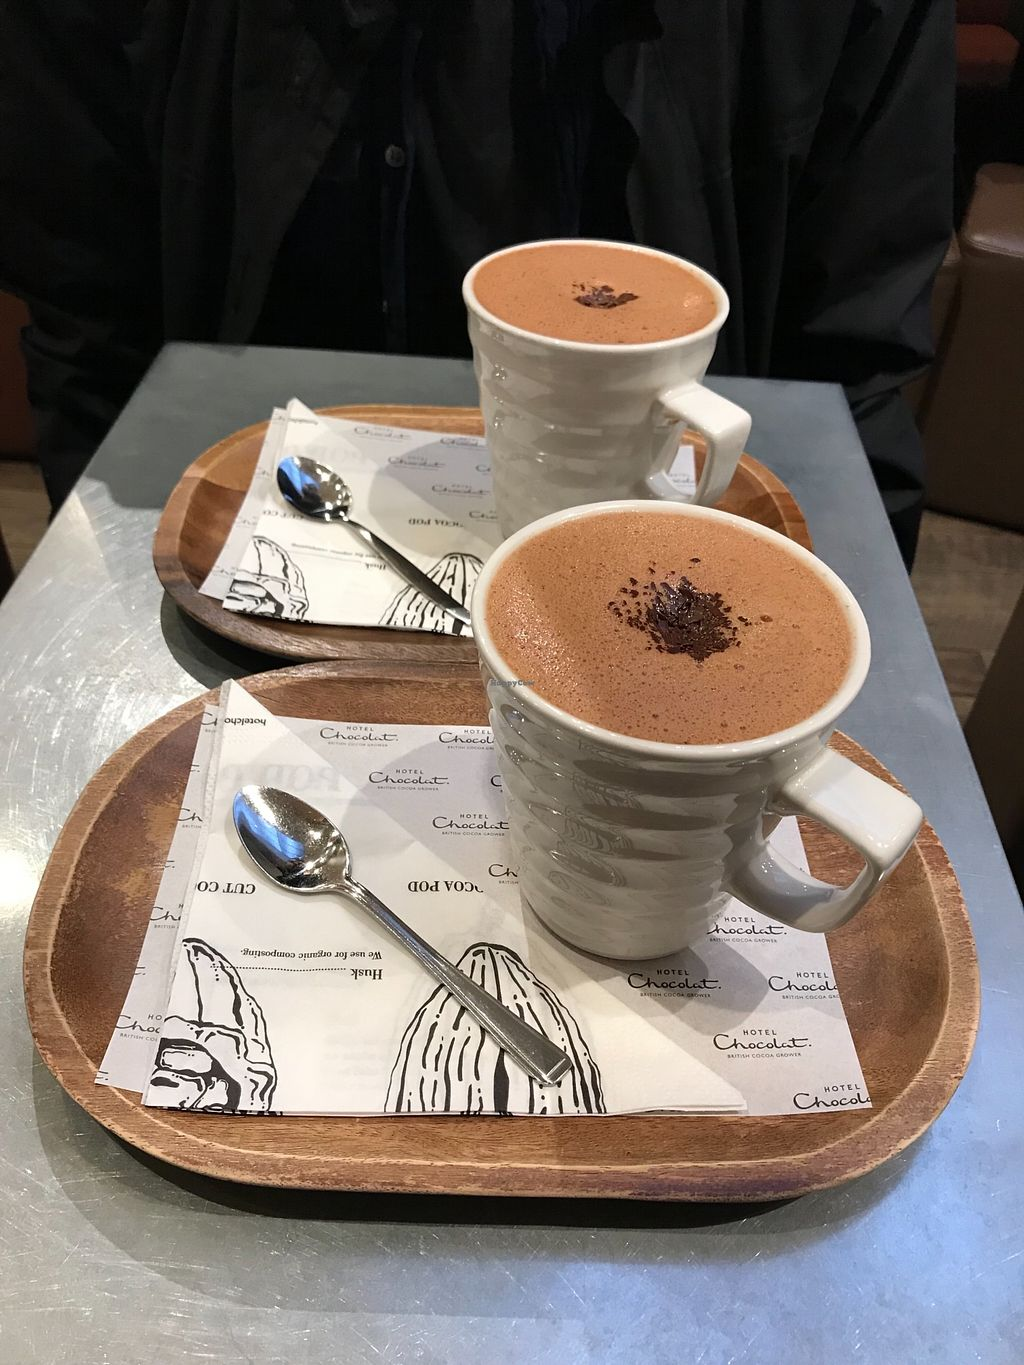 """Photo of Hotel Chocolat  by <a href=""""/members/profile/KatyWilliams"""">KatyWilliams</a> <br/>Delicious hot chocolate with coconut milk!  <br/> January 20, 2018  - <a href='/contact/abuse/image/109909/348727'>Report</a>"""